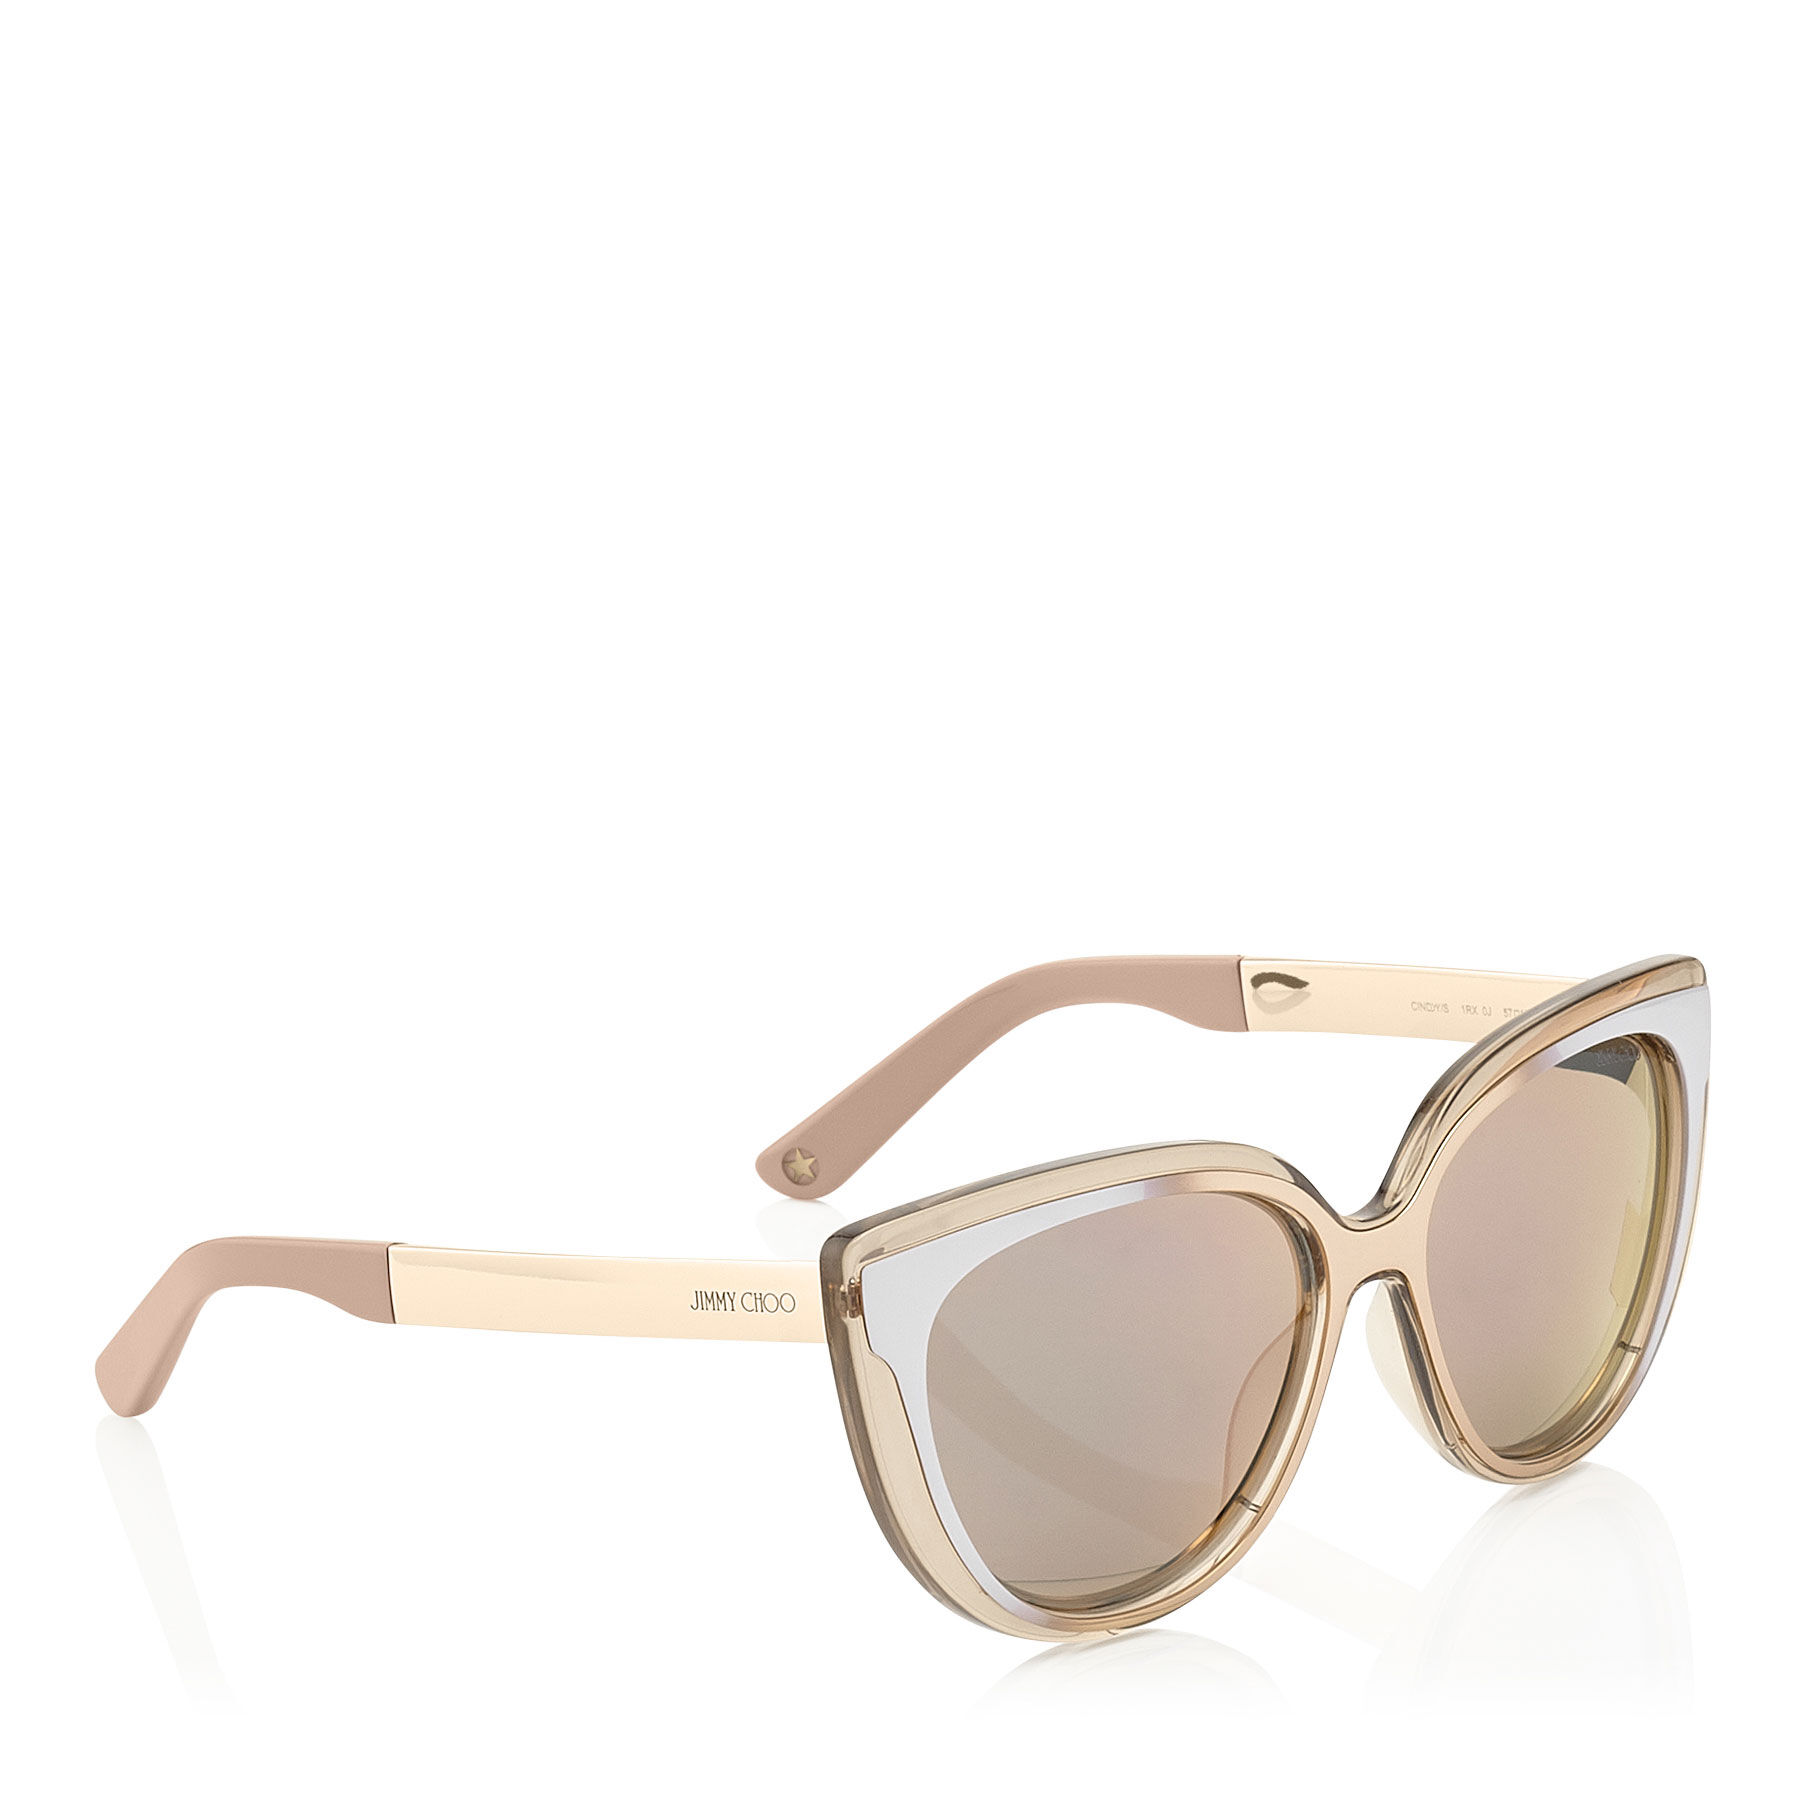 79cb5c1ea26 Jimmy choo sunglasses cindy simply accessories jpg 1800x1800 Jimmy shoe  sunglasses